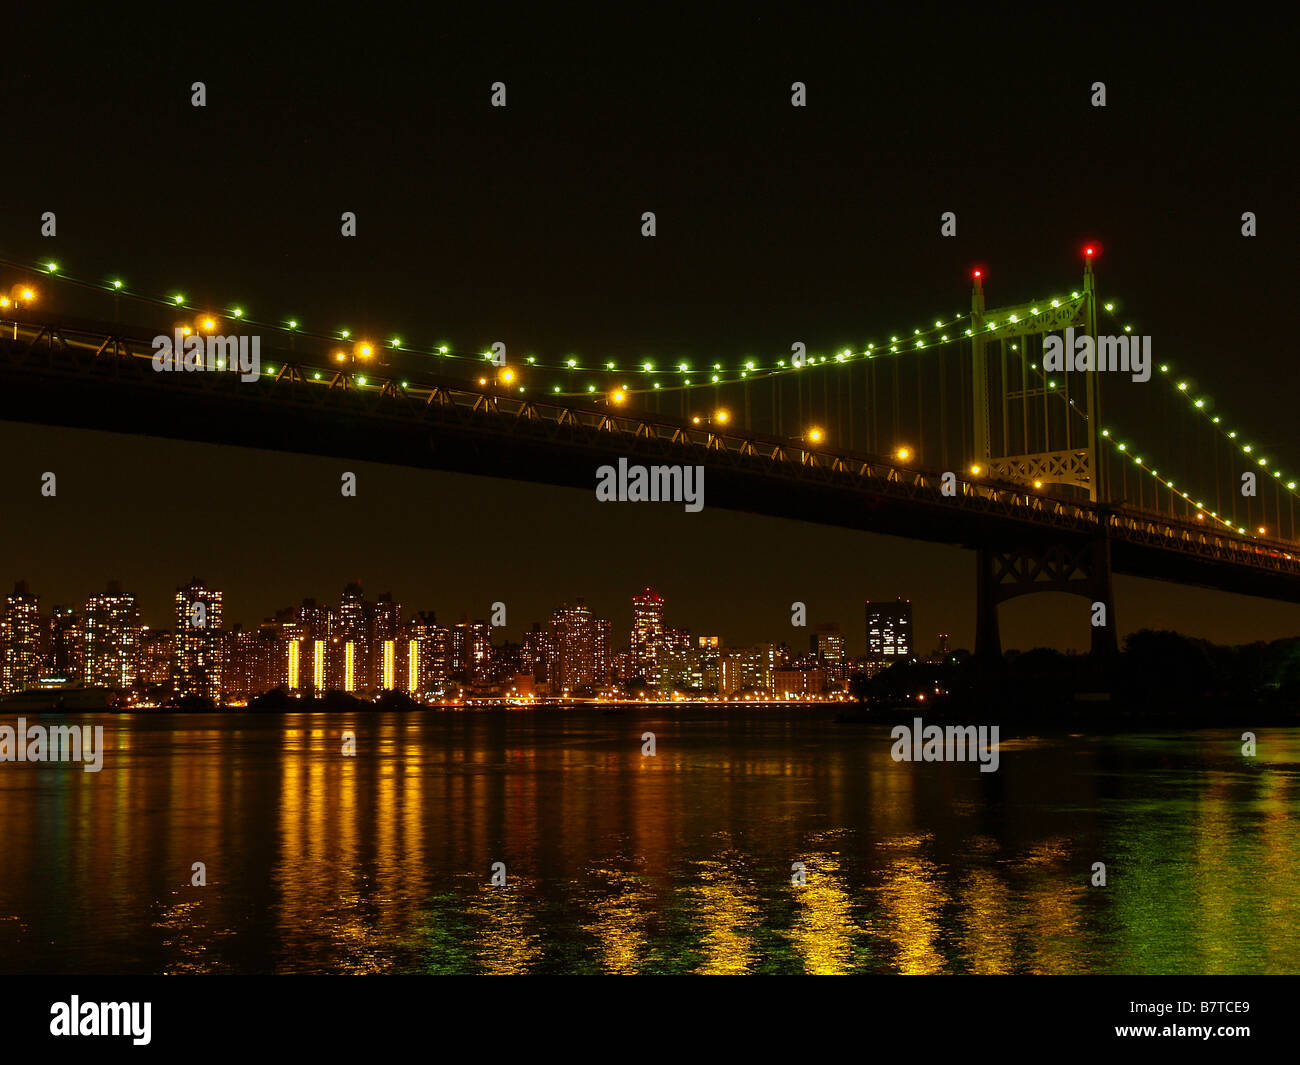 Robert F. Kennedy (Triboro) bridge in Queens, New York City at night. - Stock Image